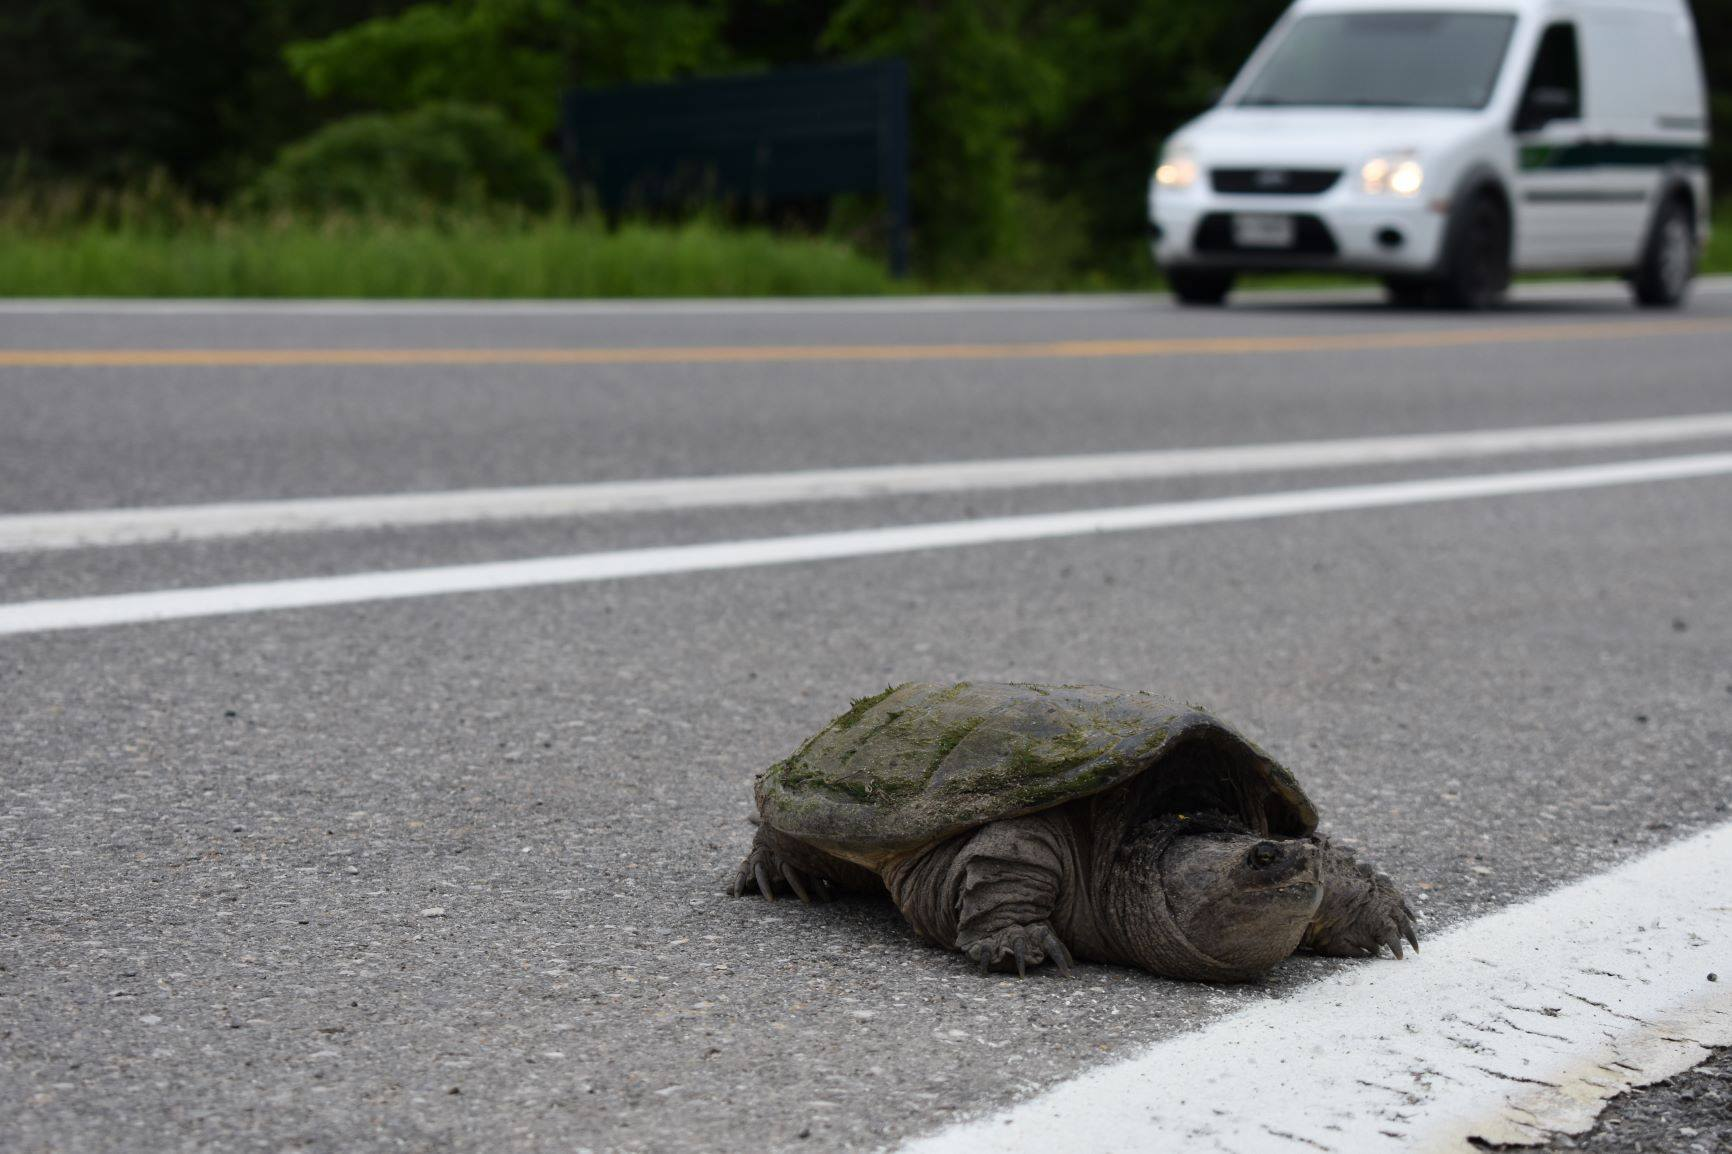 A snapping turtle crossing the road in Gatineau Park